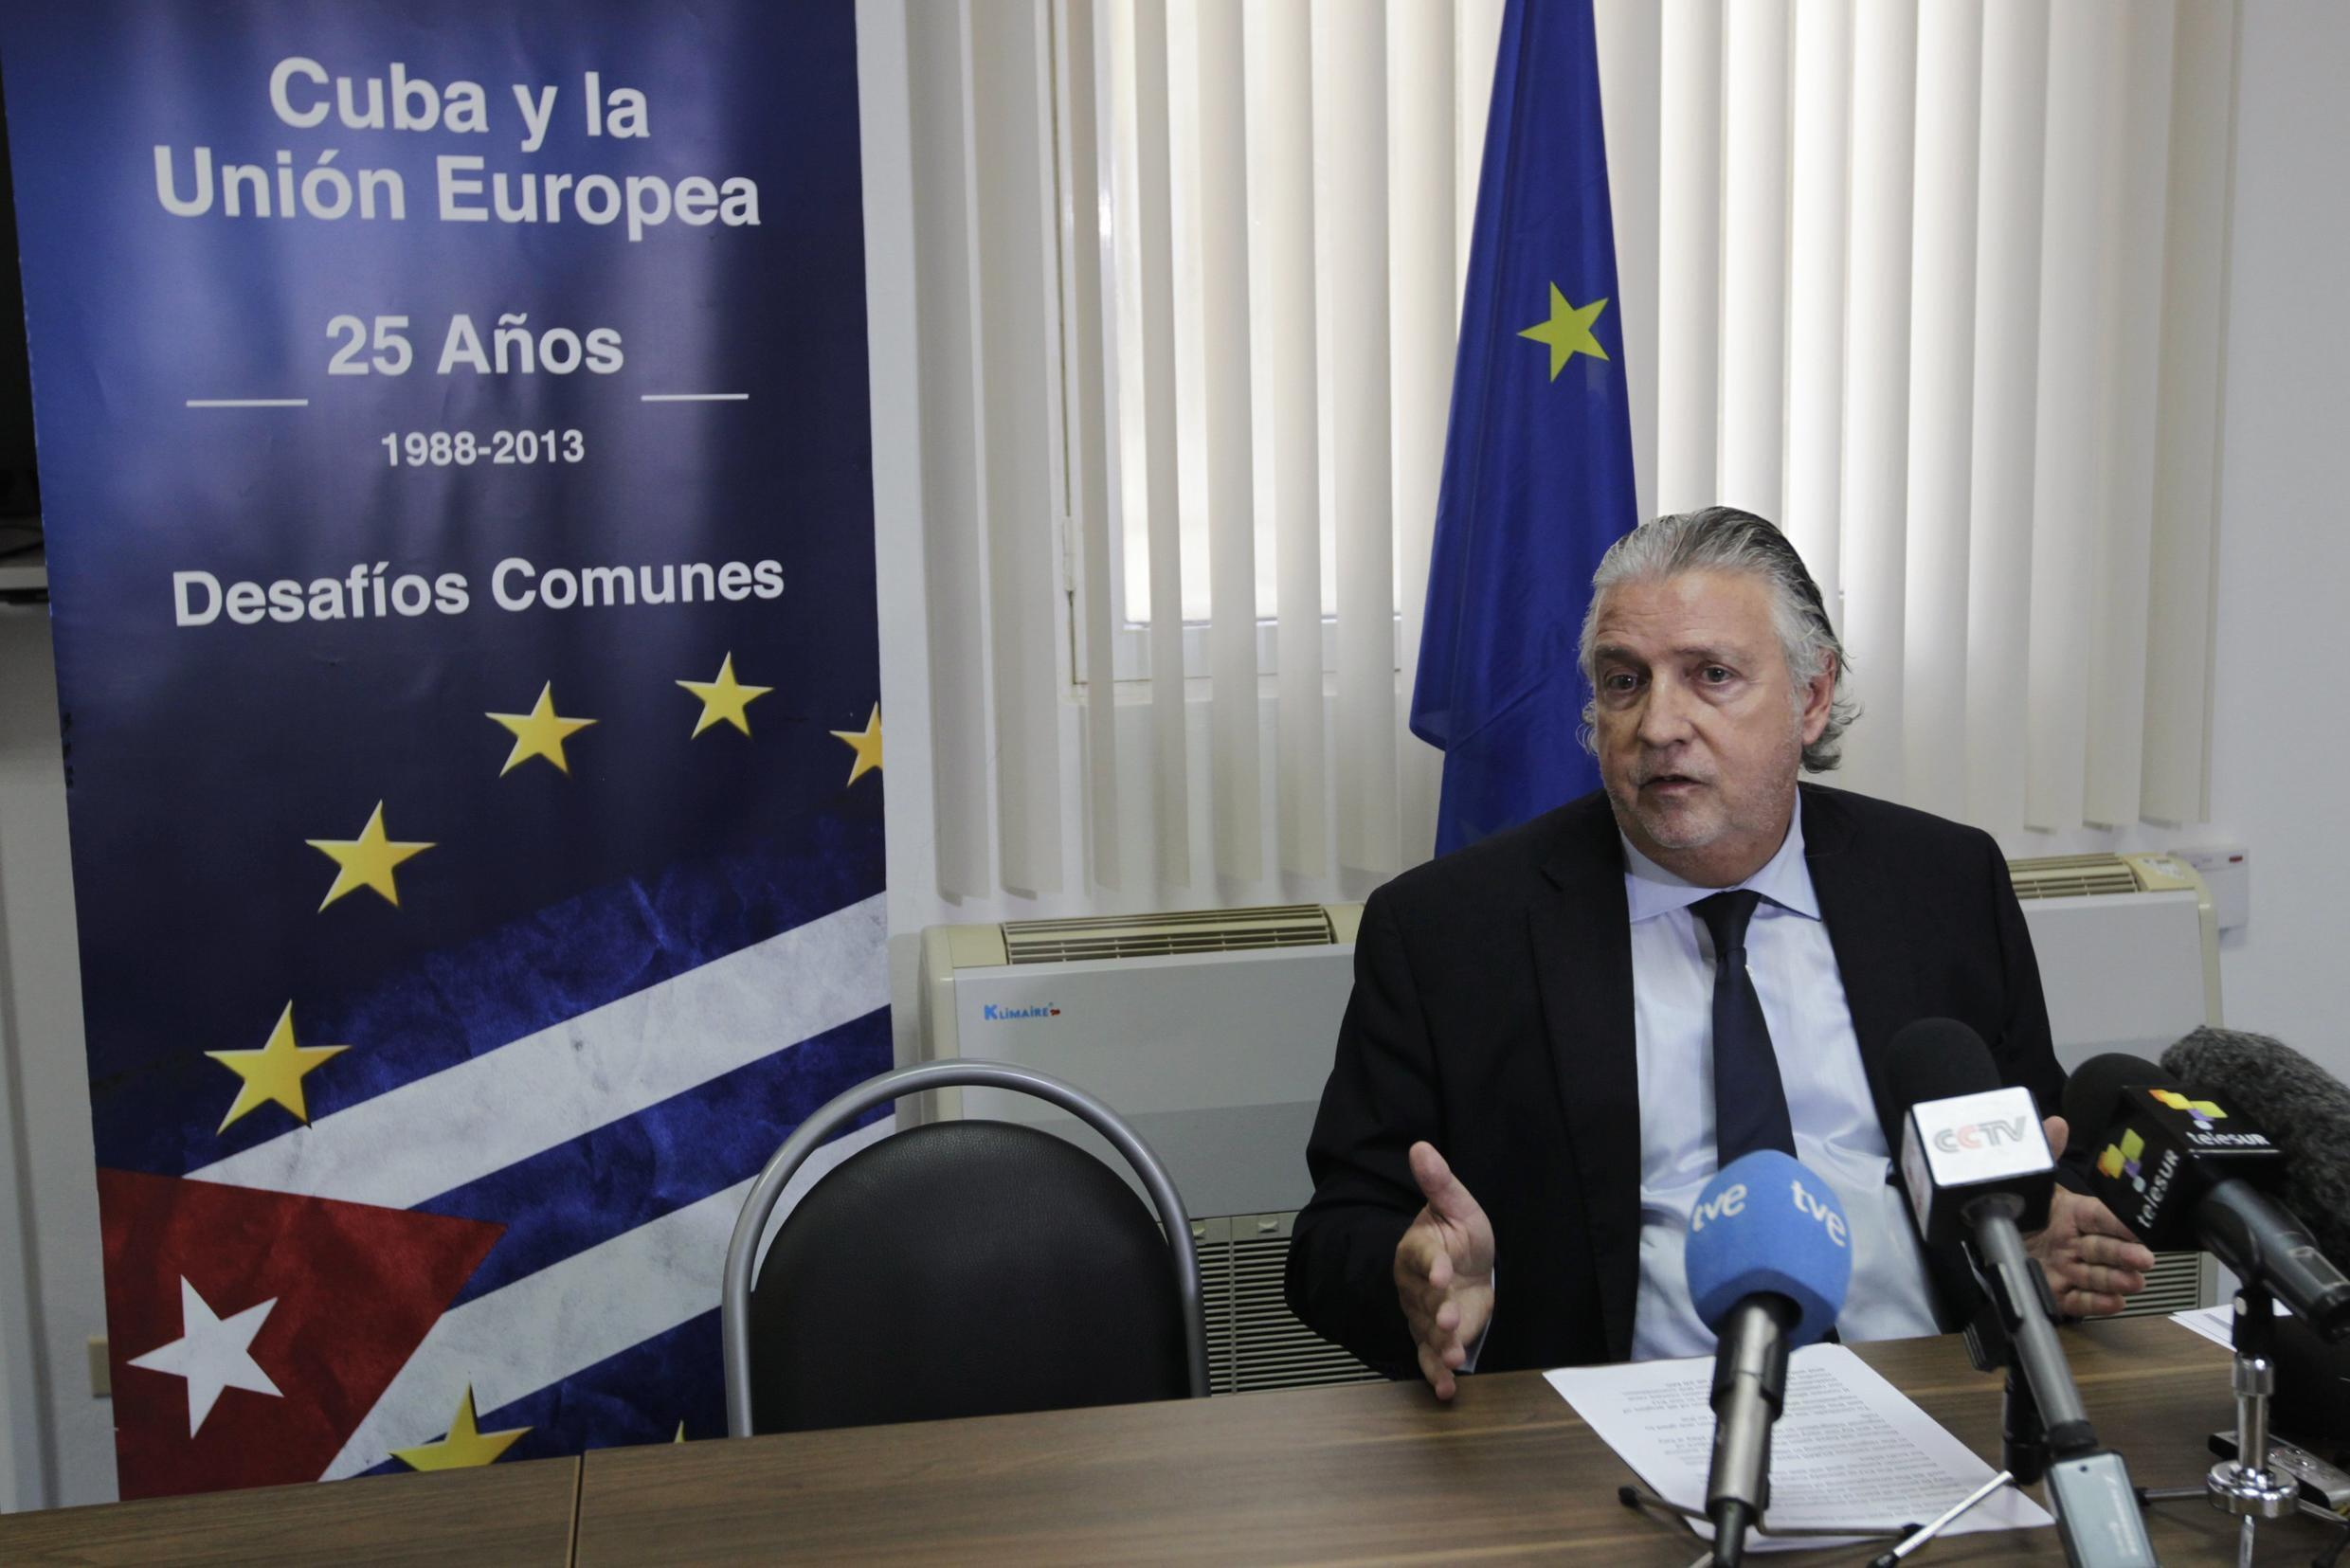 European Union ambassador to Cuba Herman Portocarero speaks in a news conference in Havana about EU agreement on Monday to launch negotiations with Cuba to increase trade, investment and dialogue on human rights